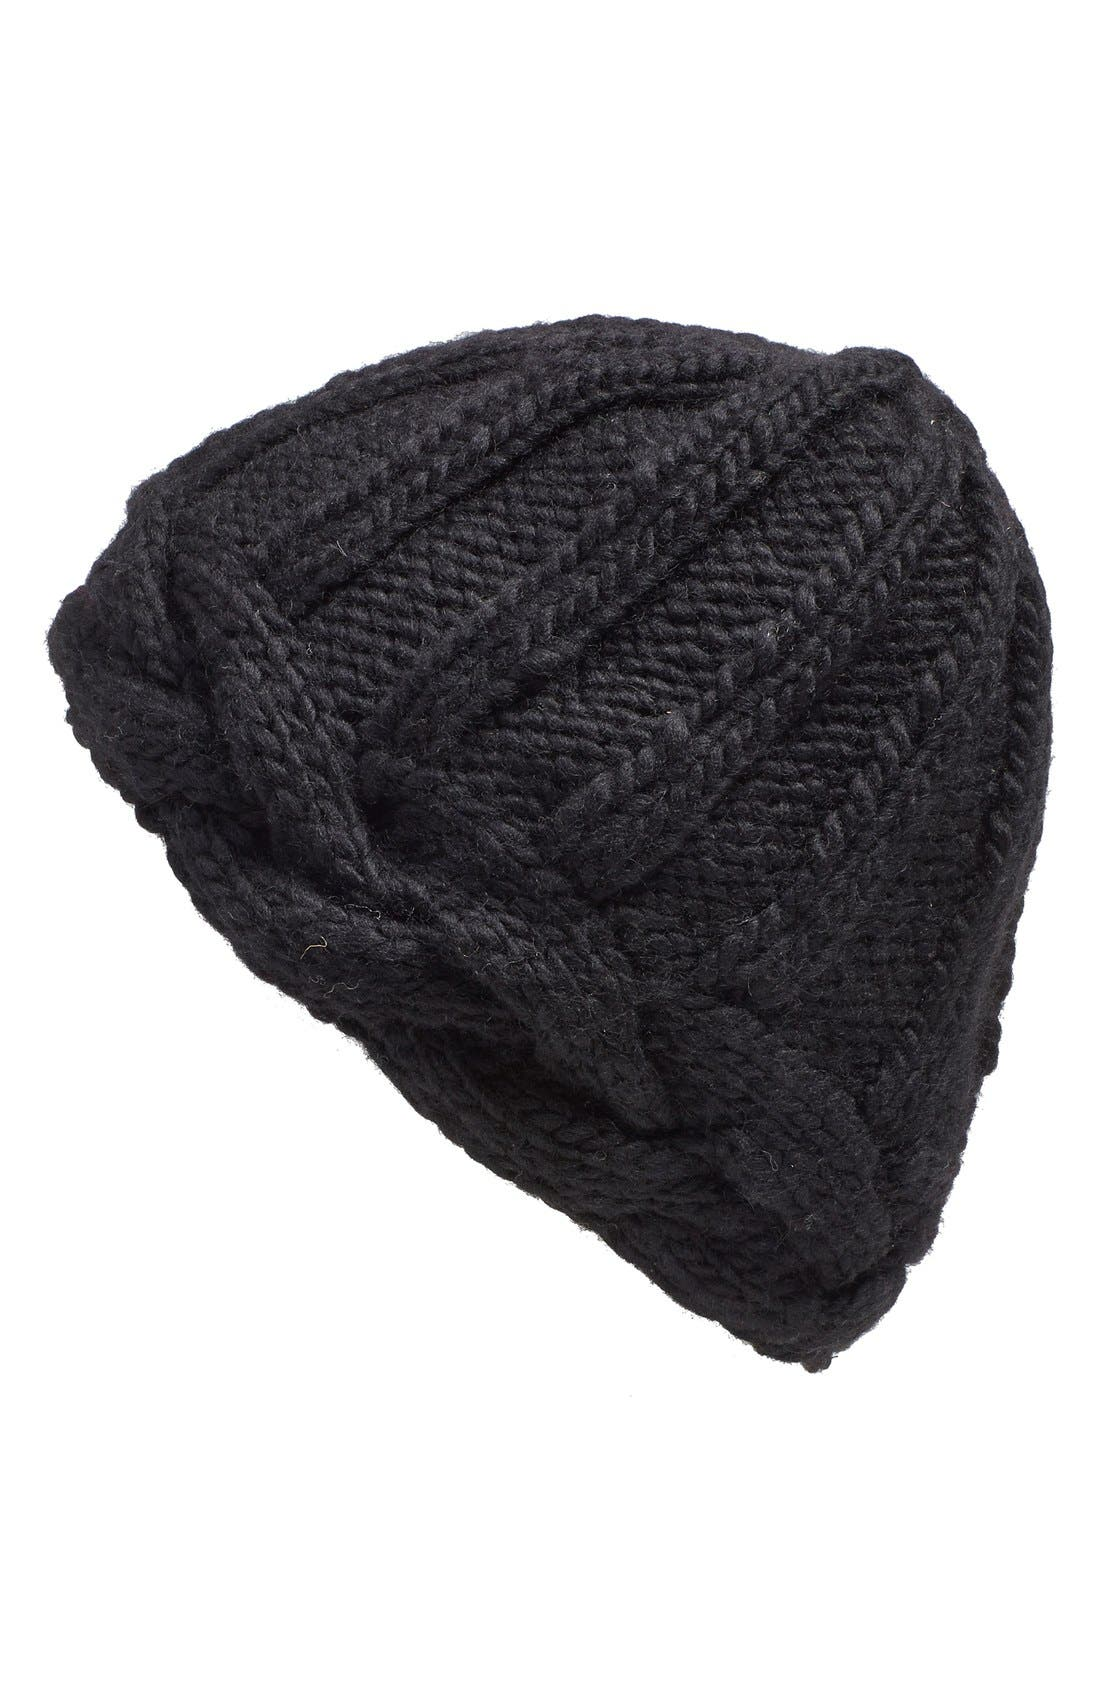 Alternate Image 1 Selected - Nirvanna Designs Braided Edge Knit Beanie